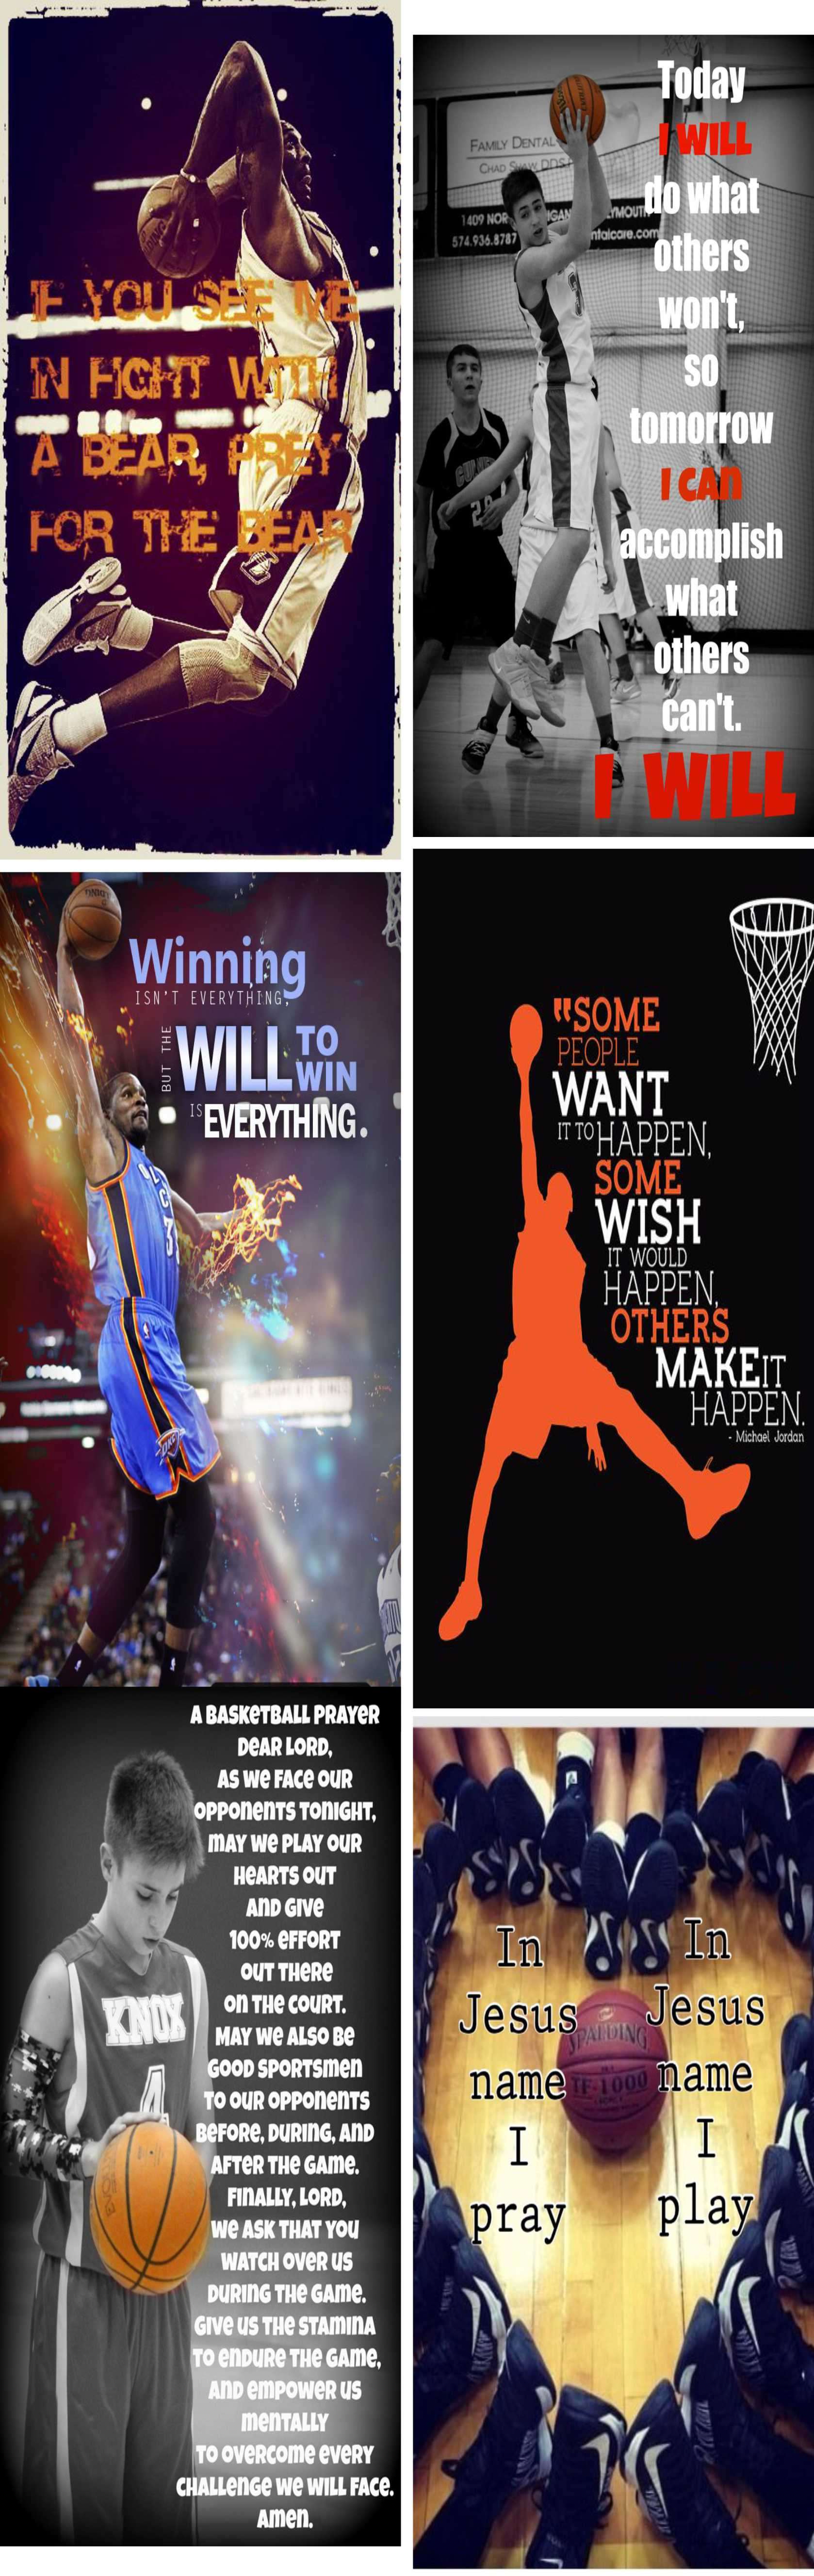 Best Basketball quotes with images